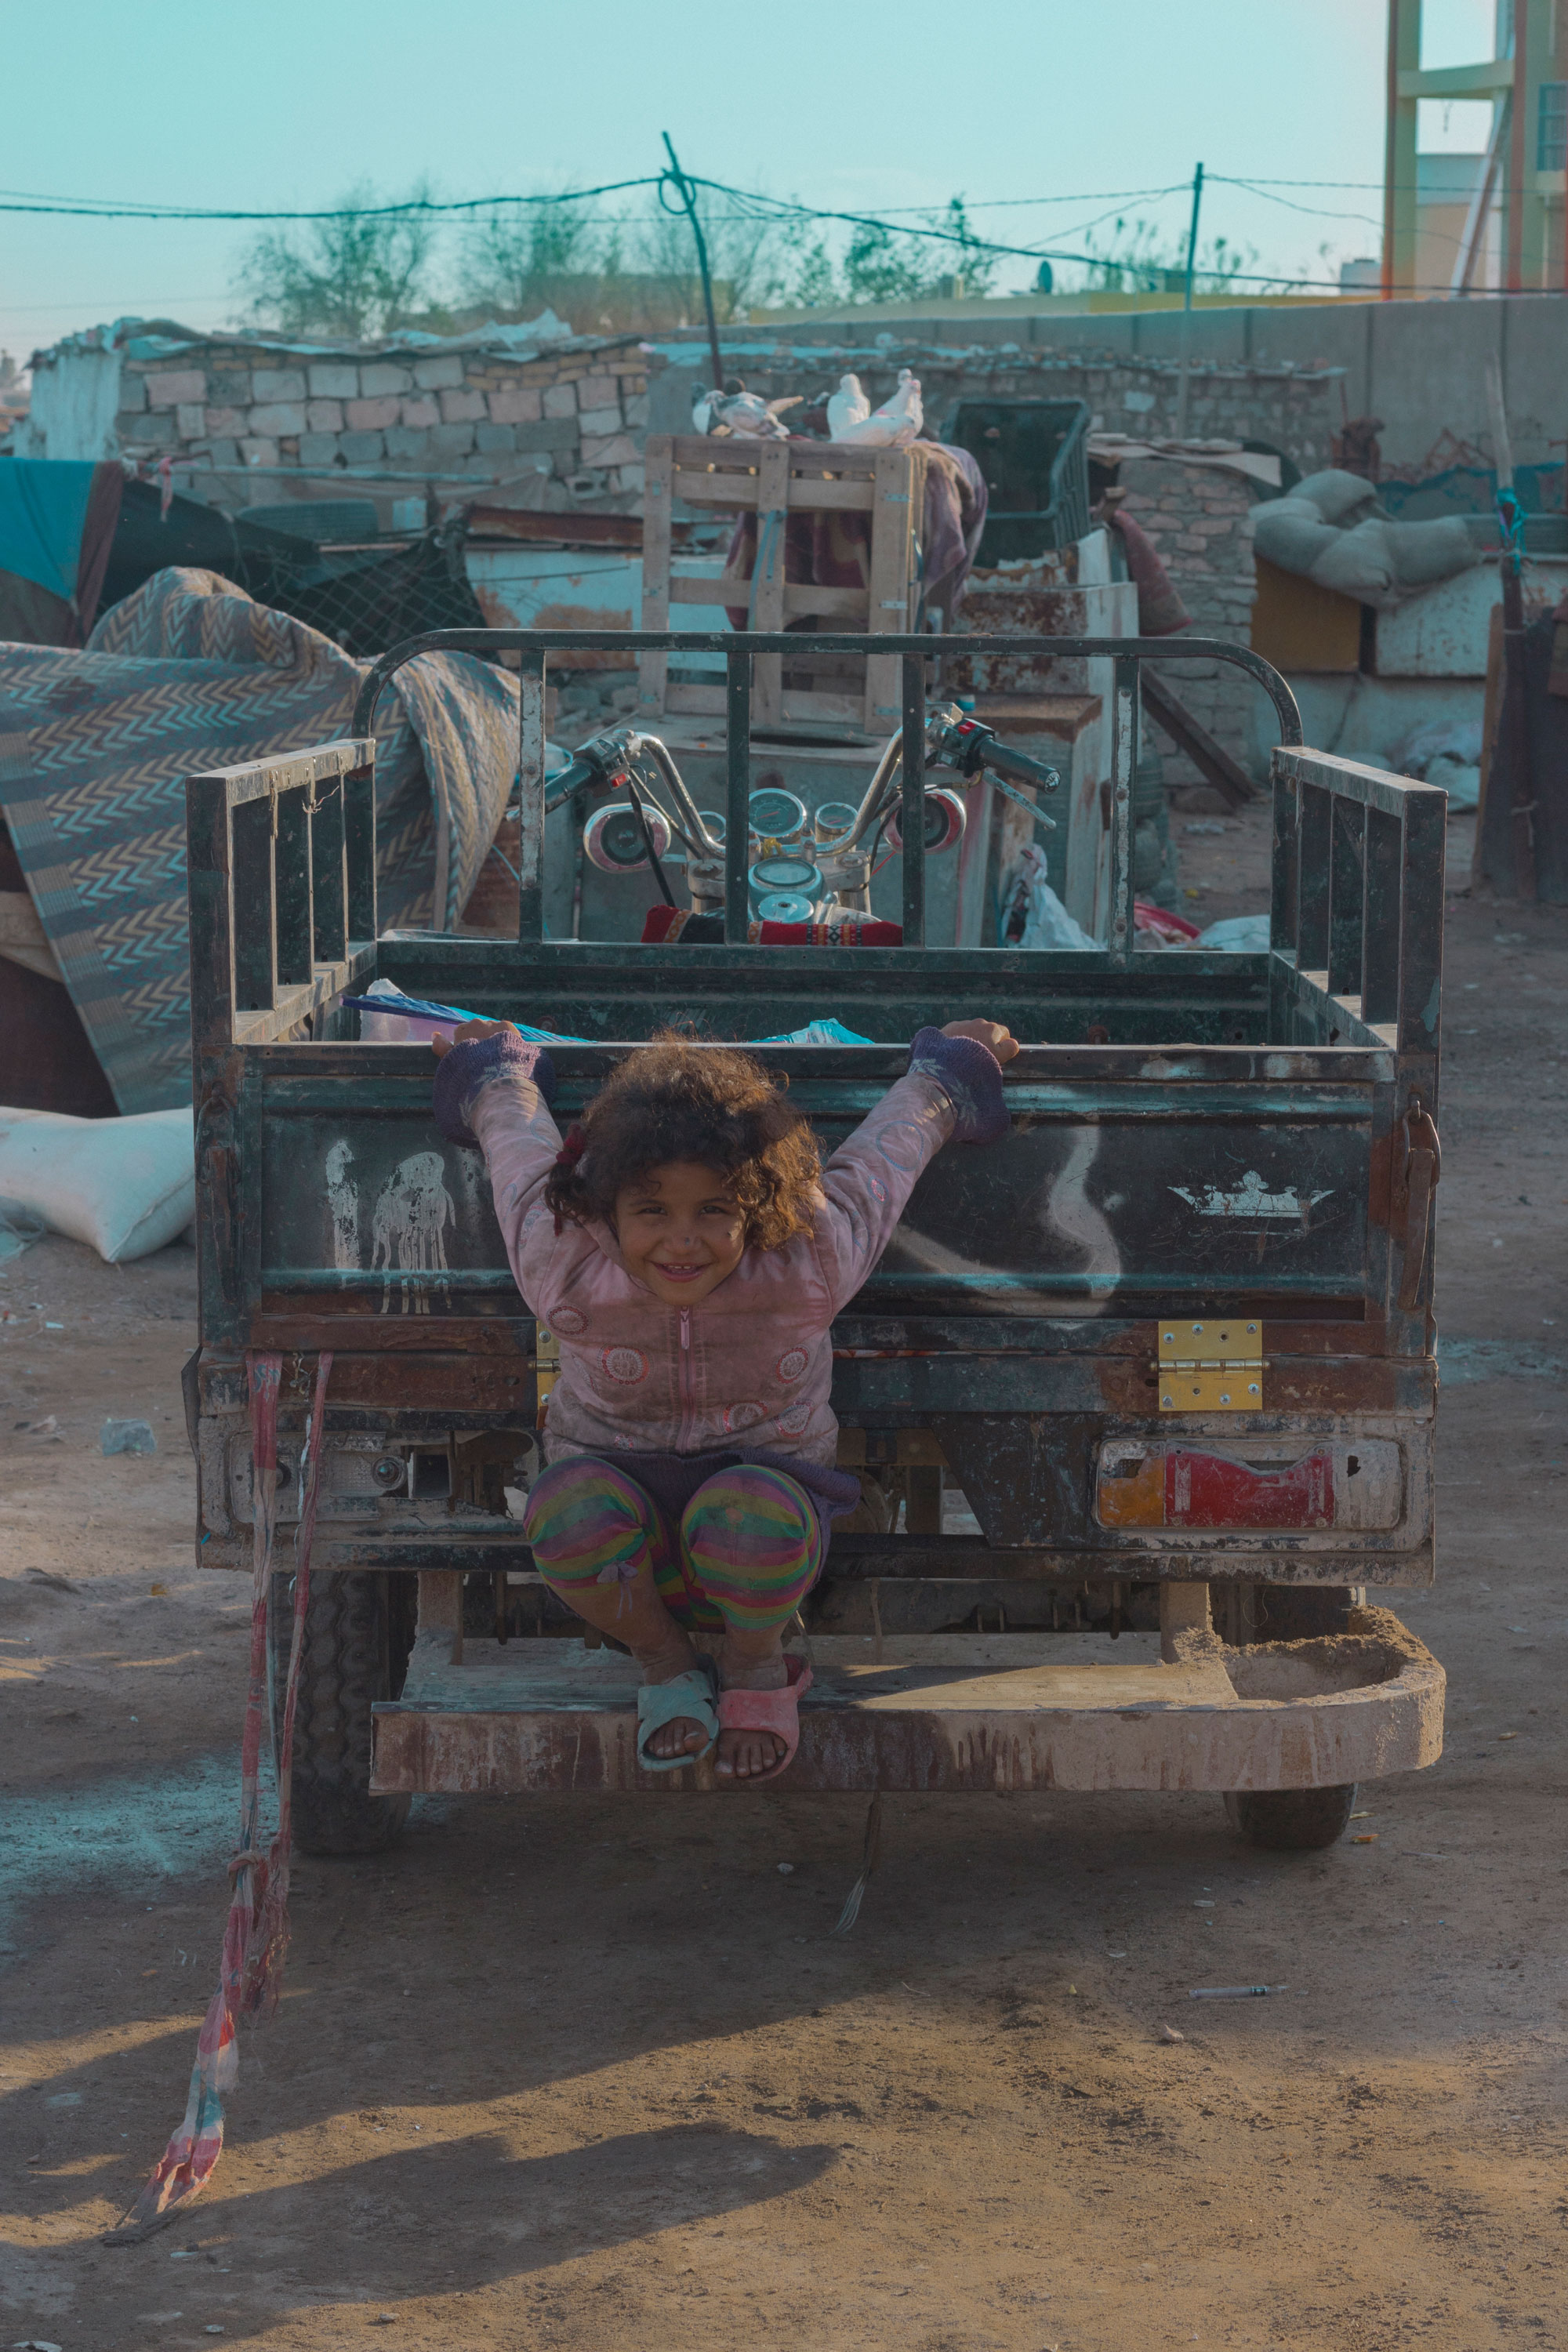 A child looks into the camera as she hangs on to the back of a stationary pick up truck.